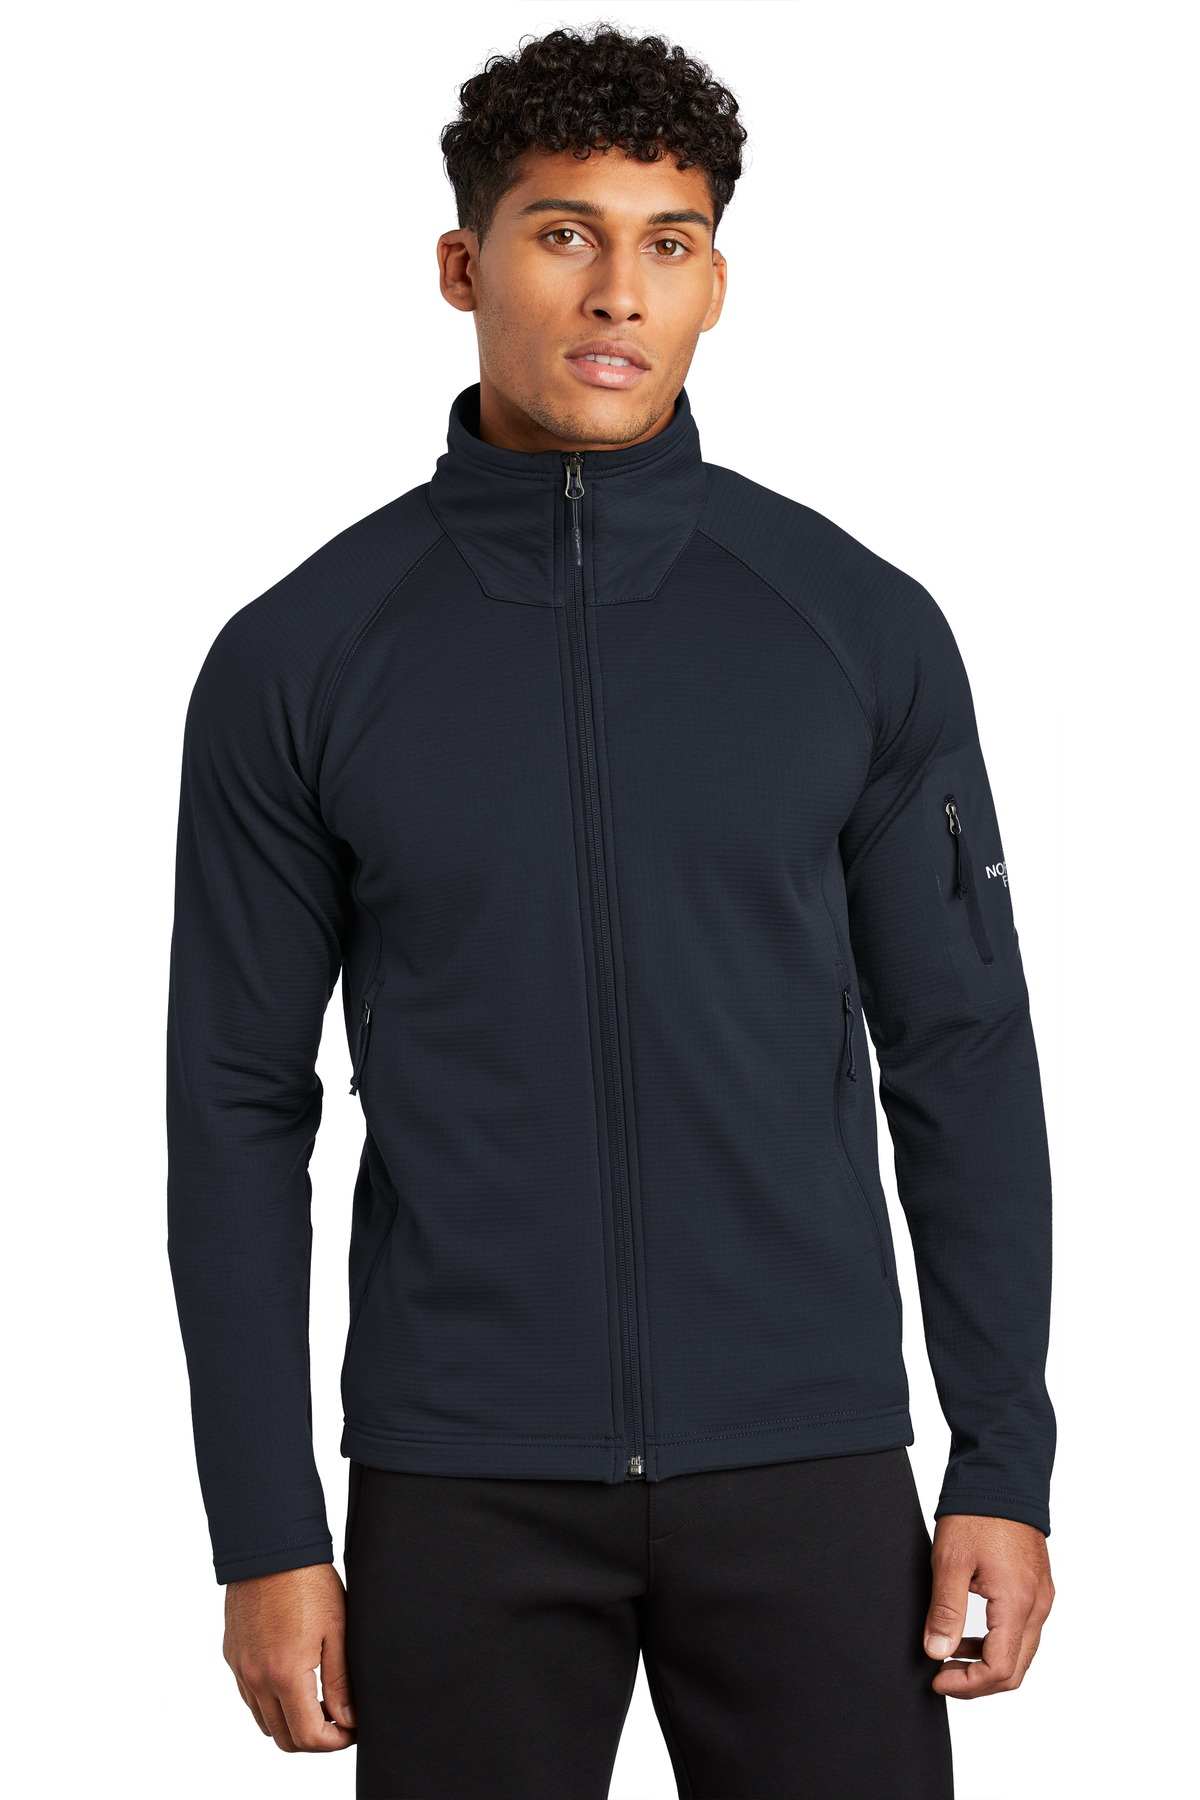 The North Face  ®  Mountain Peaks Full-Zip Fleece Jacket NF0A47FD - Urban Navy